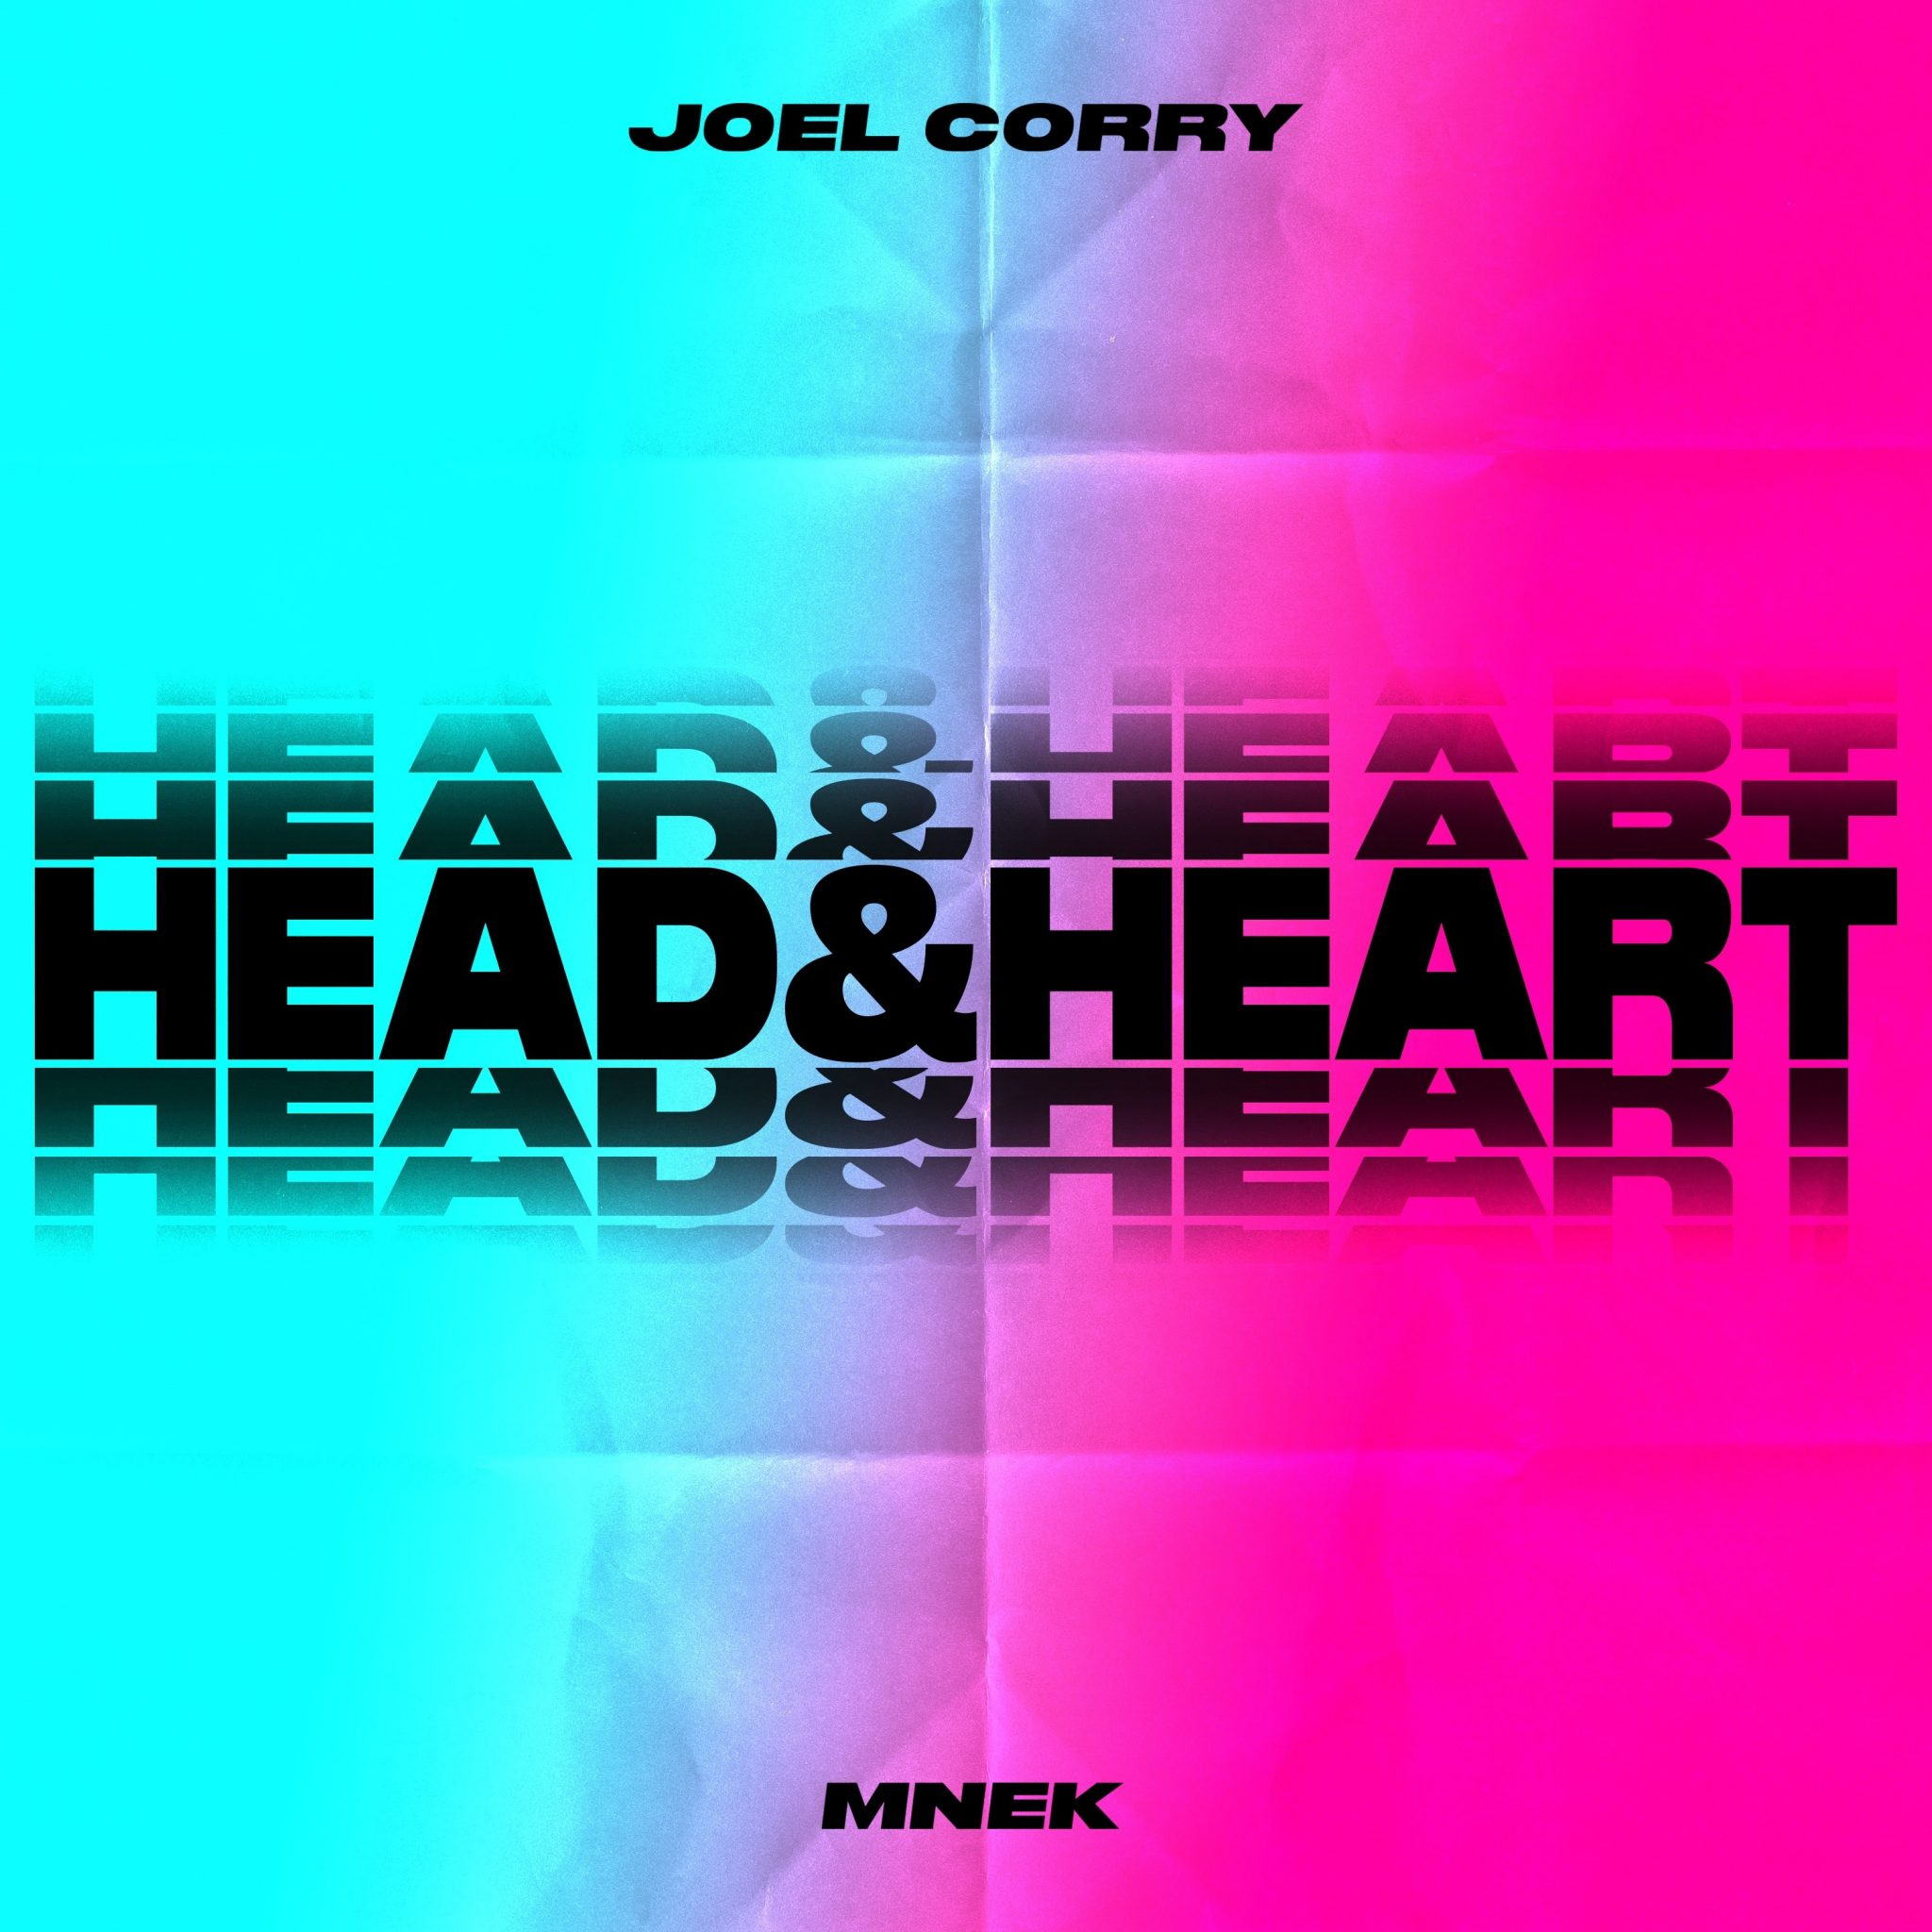 Joel-Corry-teams-up-with-MNEK-for-new-single.jpg